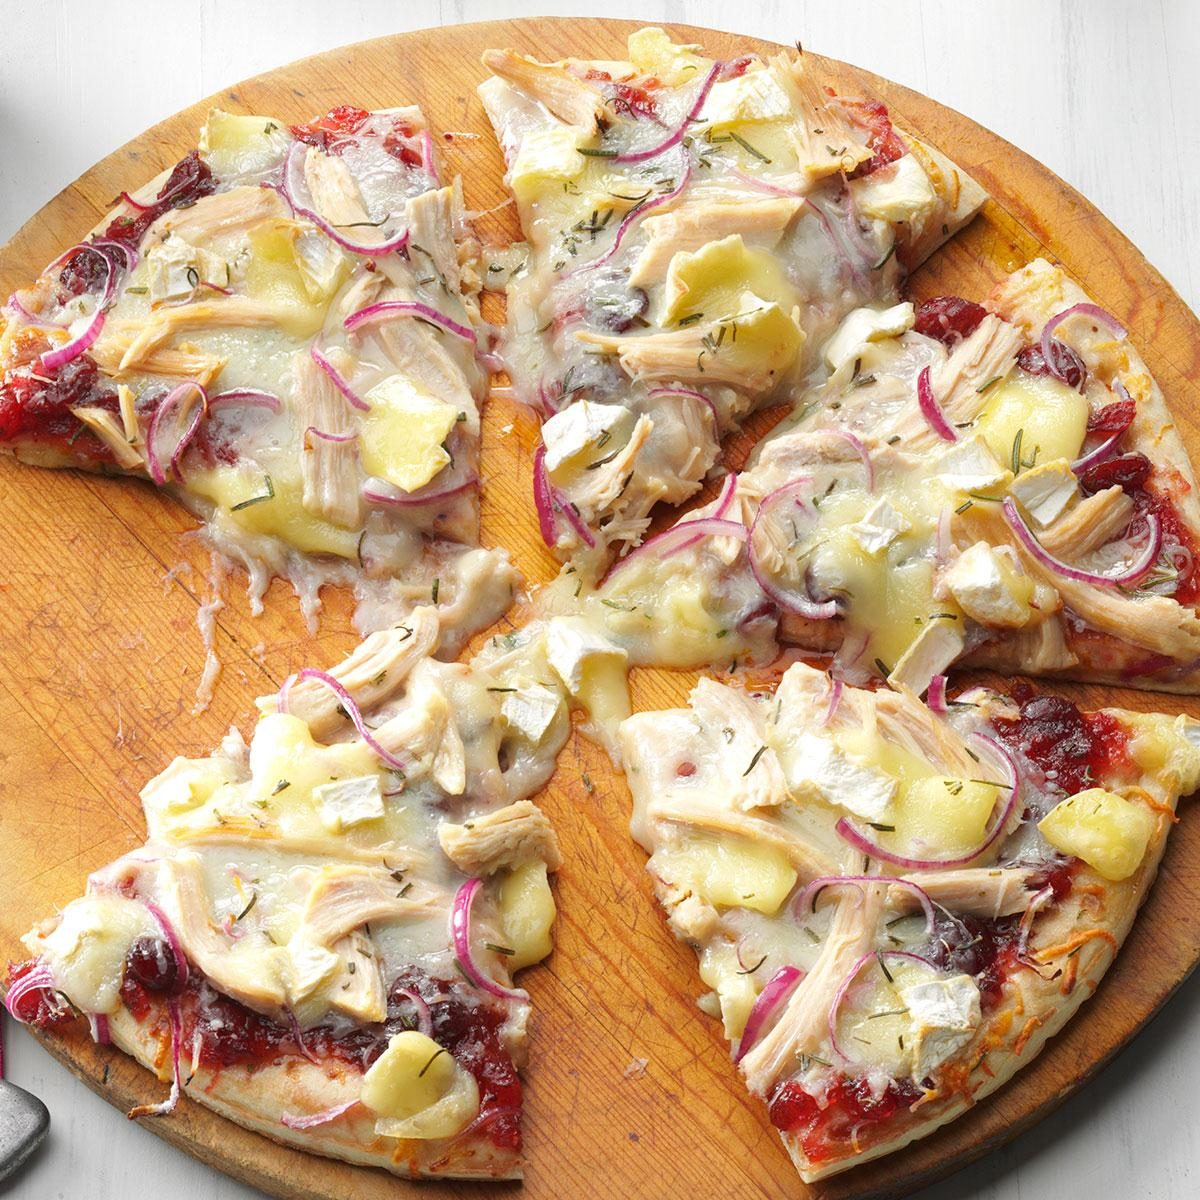 Cranberry, Brie & Turkey Pizza Recipe | Taste of Home